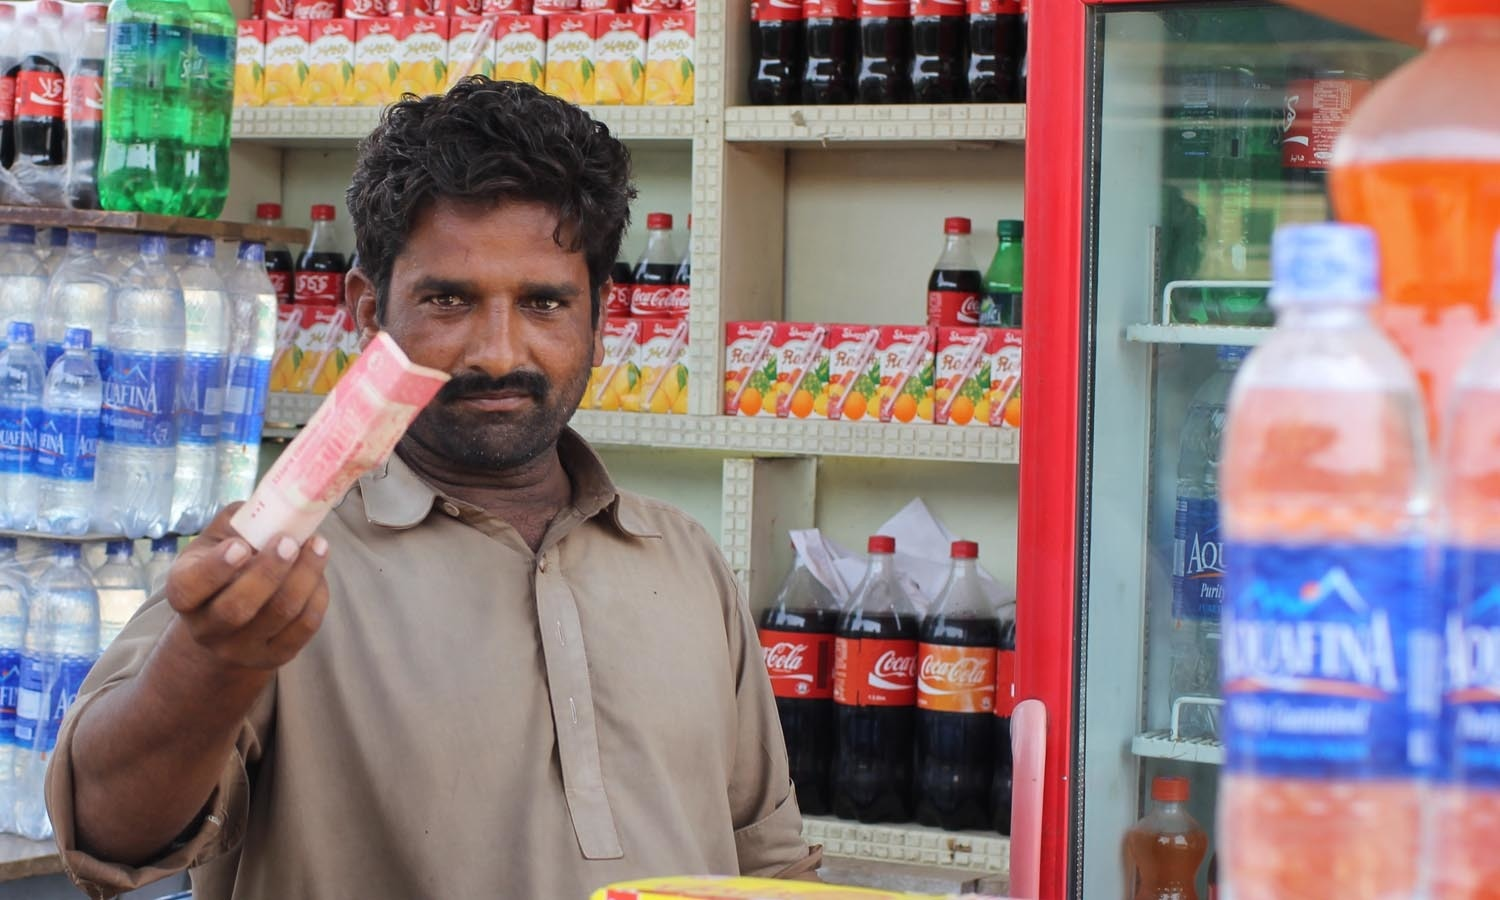 Rizwan, a dhaba owner greets us with a hundred rupee note.